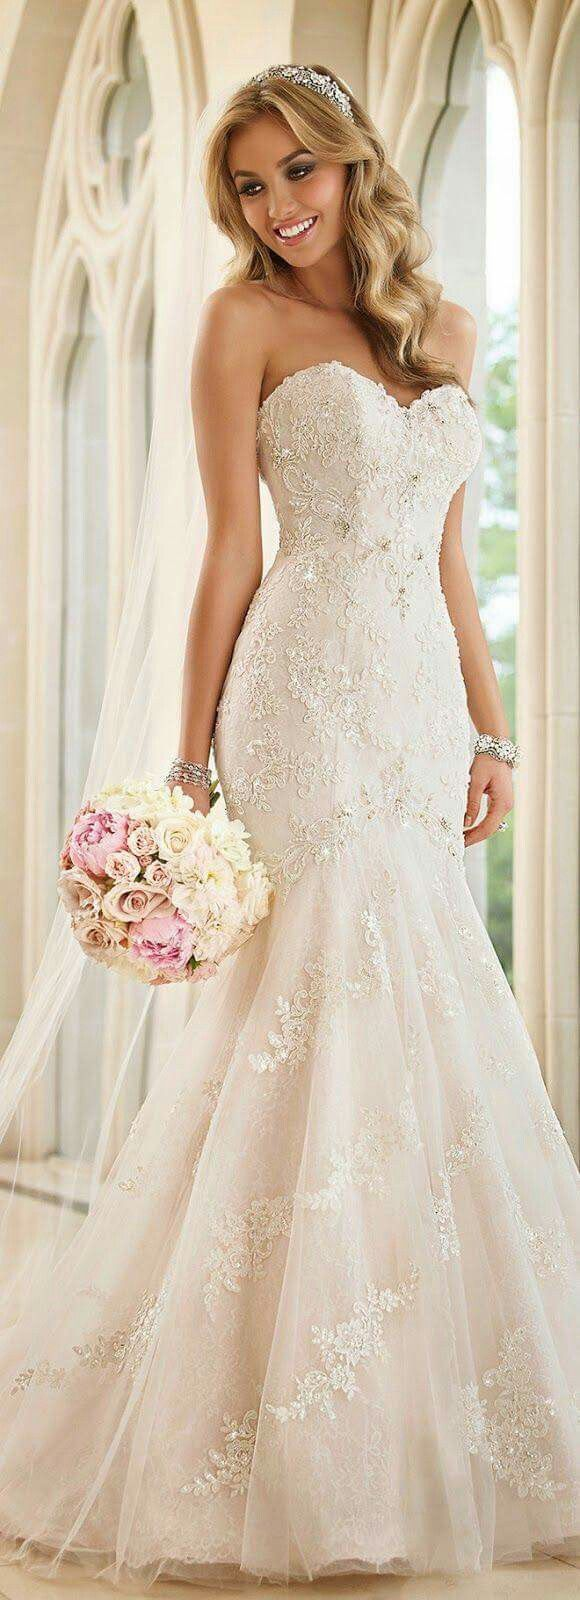 54 best Vestidos images on Pinterest | Vestidos de novia, Vestidos ...